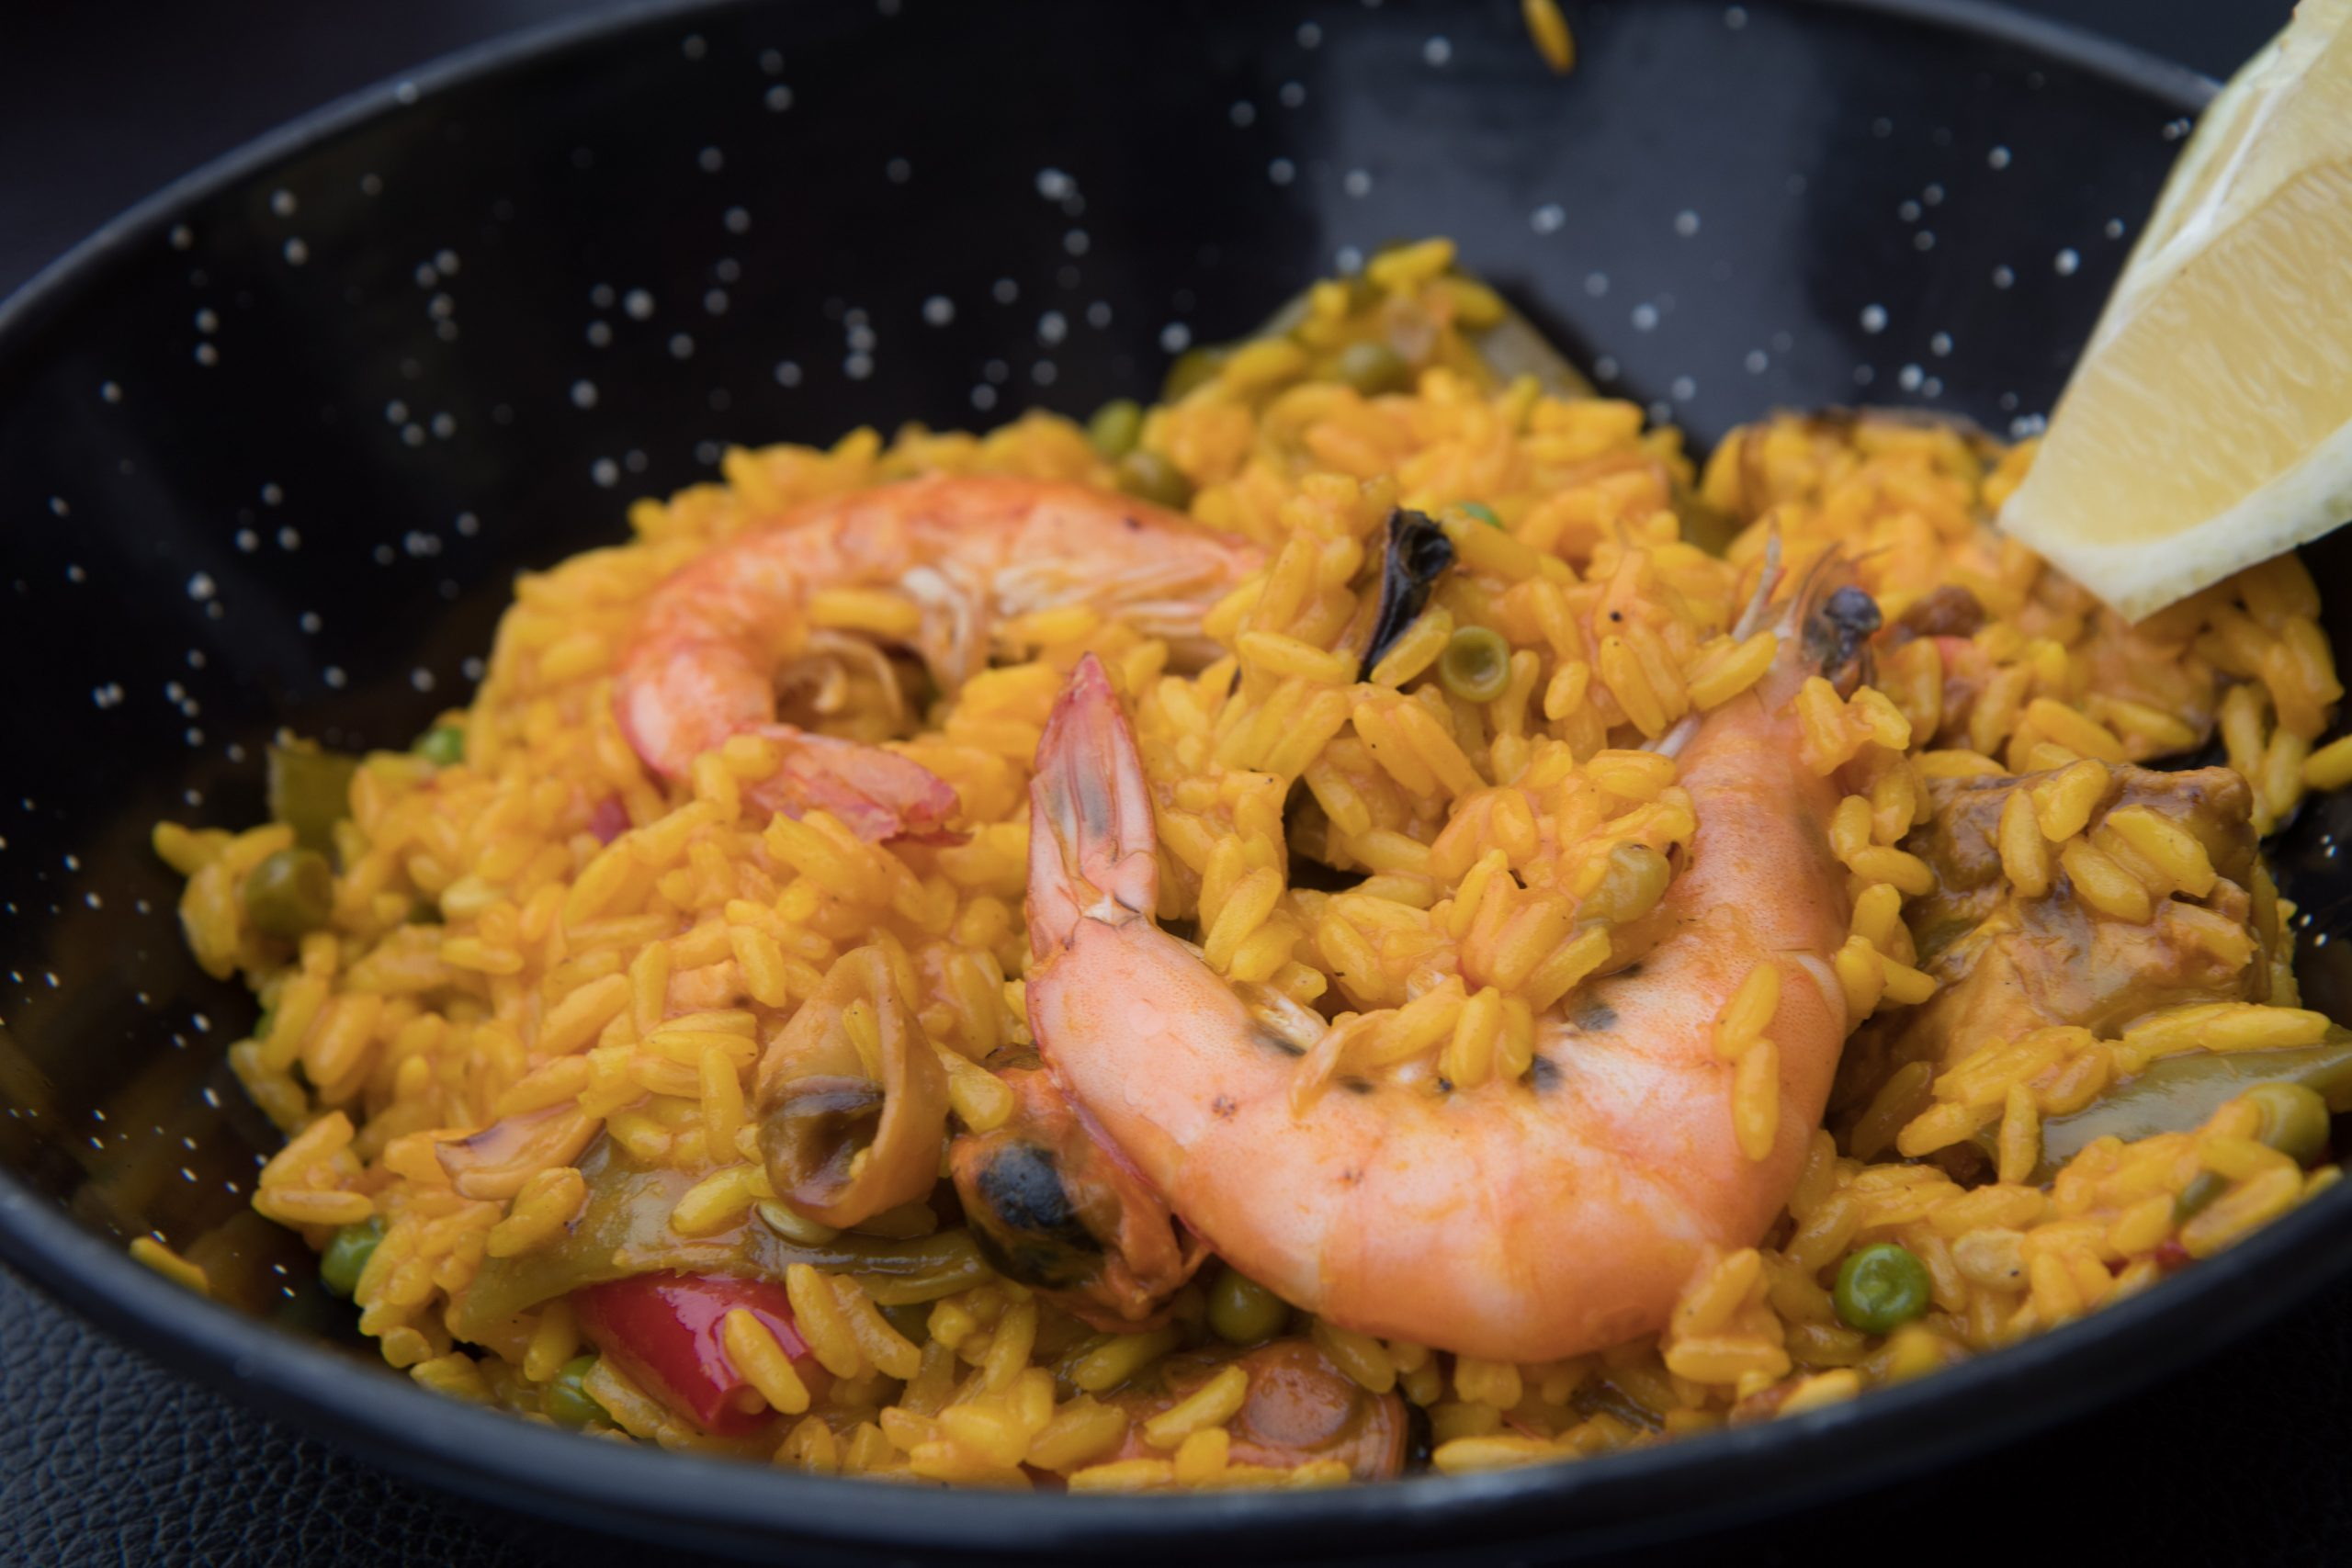 You can't visit Spain and not eat paella, right?